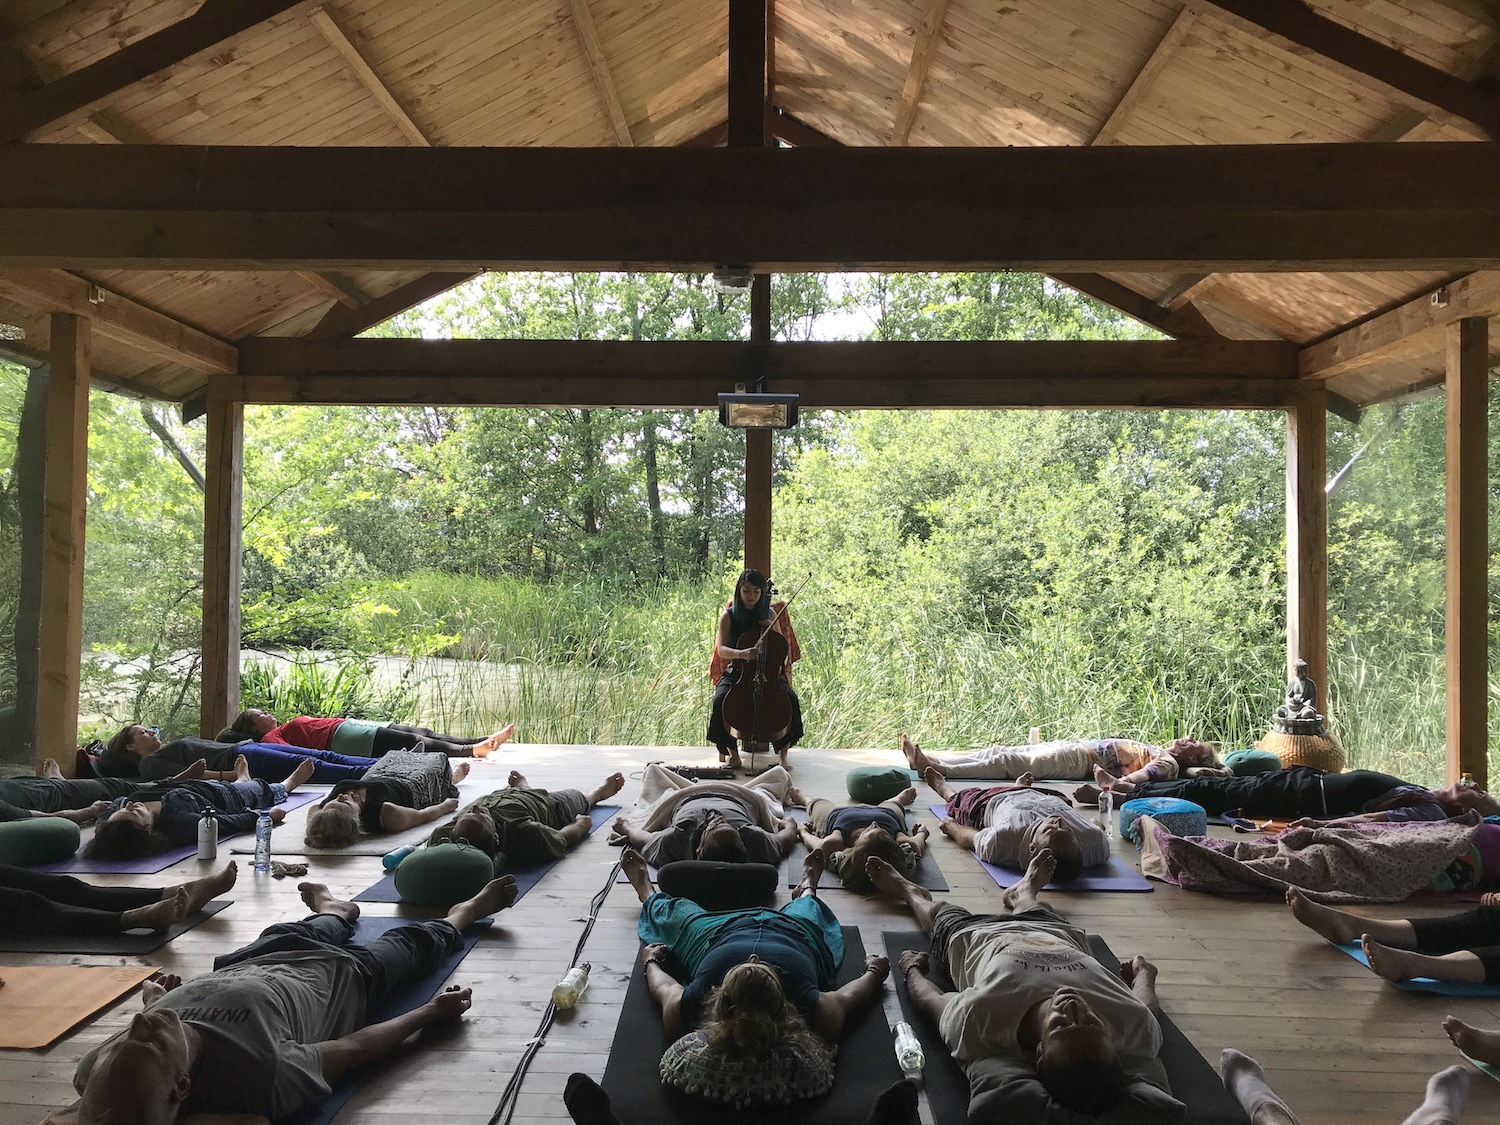 Cello Savasana Concert as part of Ecstatic Woods retreat in Schijf, The Netherlands